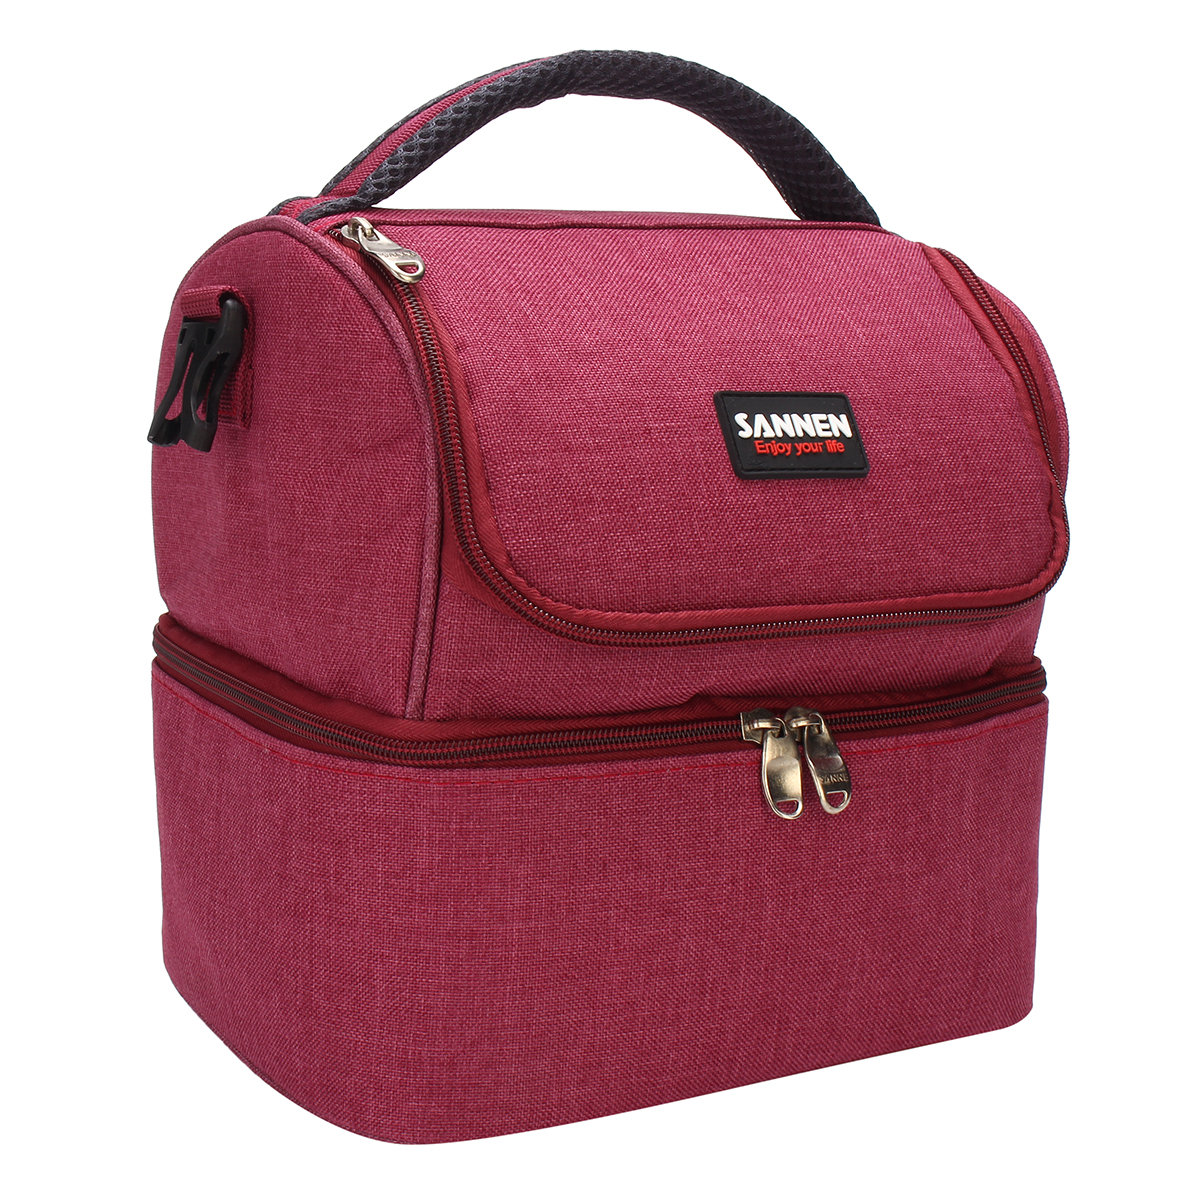 Isolado Double Decker Cooler Lunch Bag Com Alça De Ombro Removível Saco De Piquenique Tote Bolsa